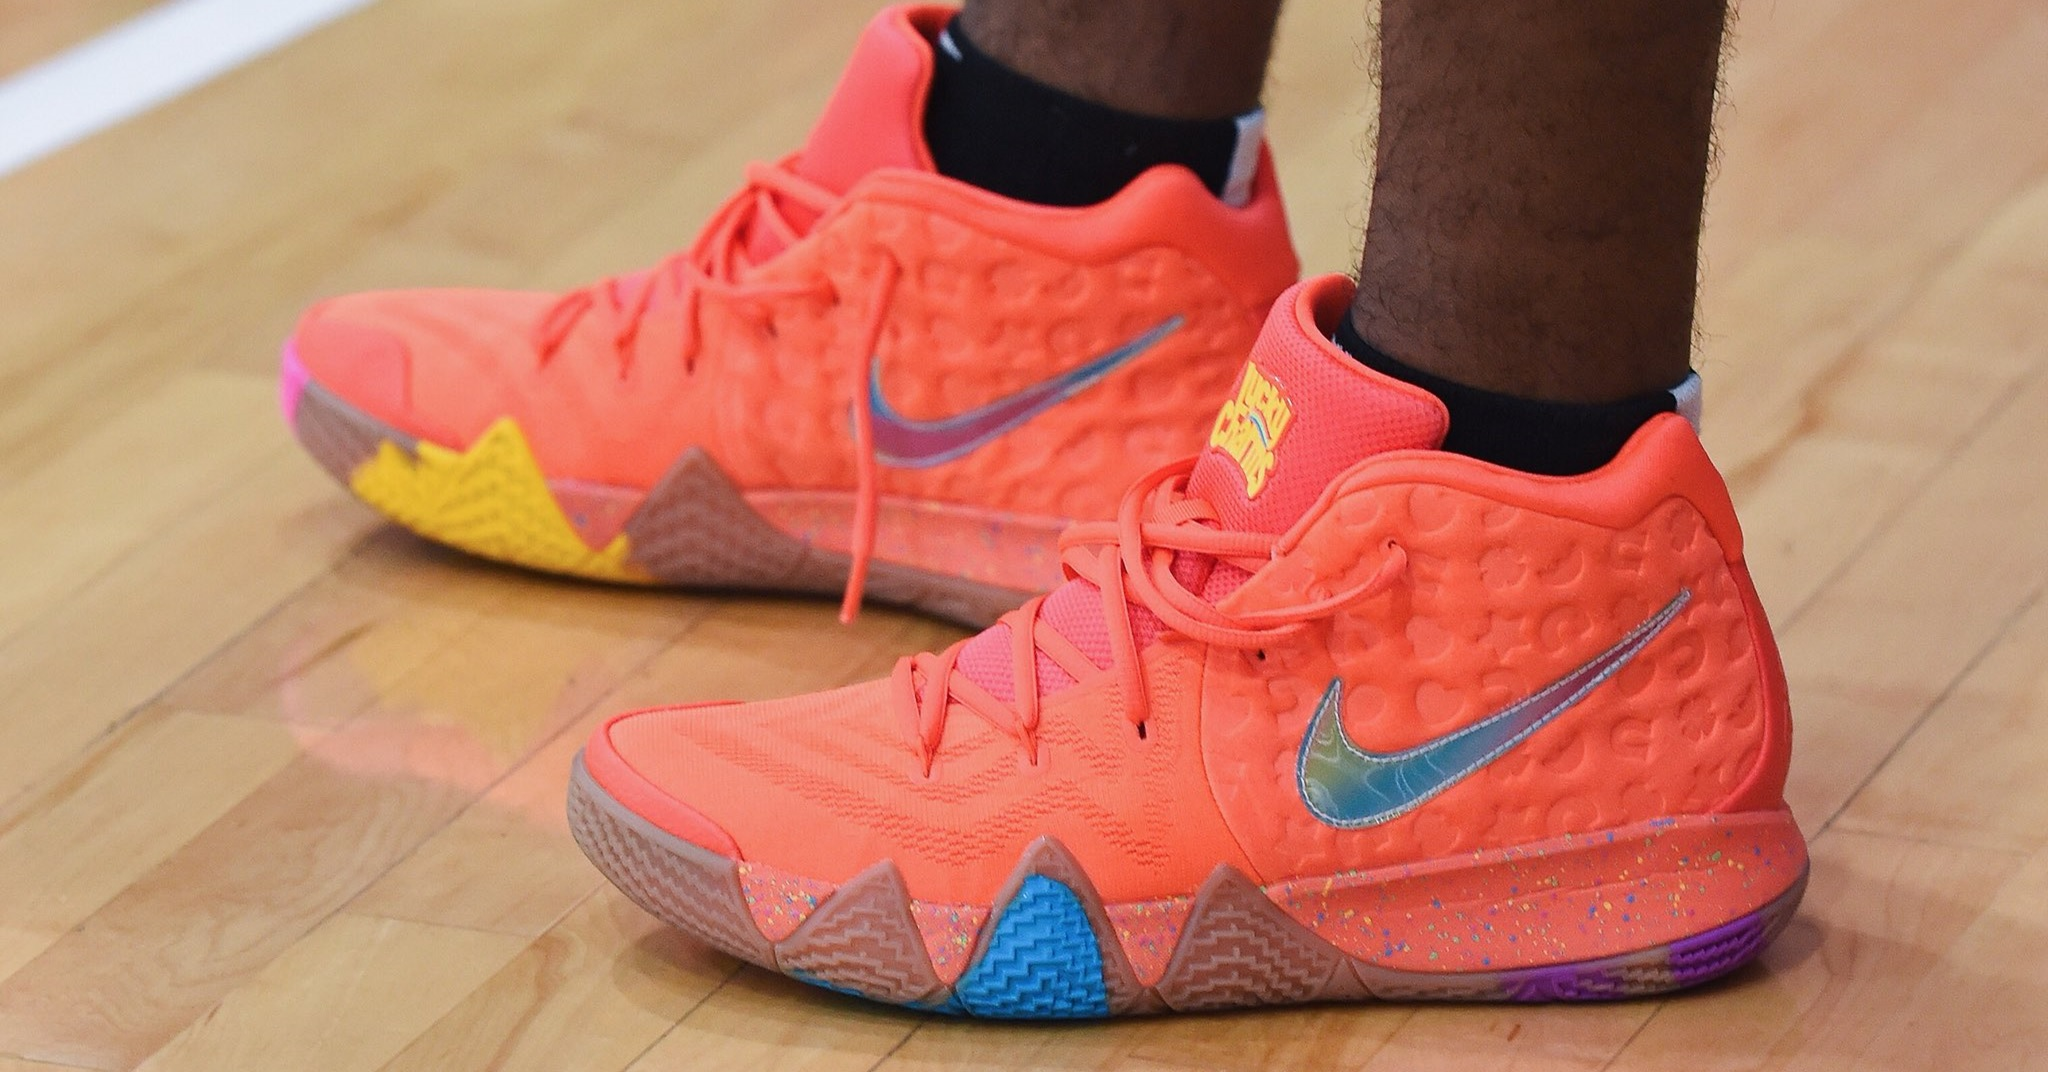 save off 38933 75b55 kicks-on-kyrie-irving-nike-kyrie-4-lucky-charms – KENLU.net